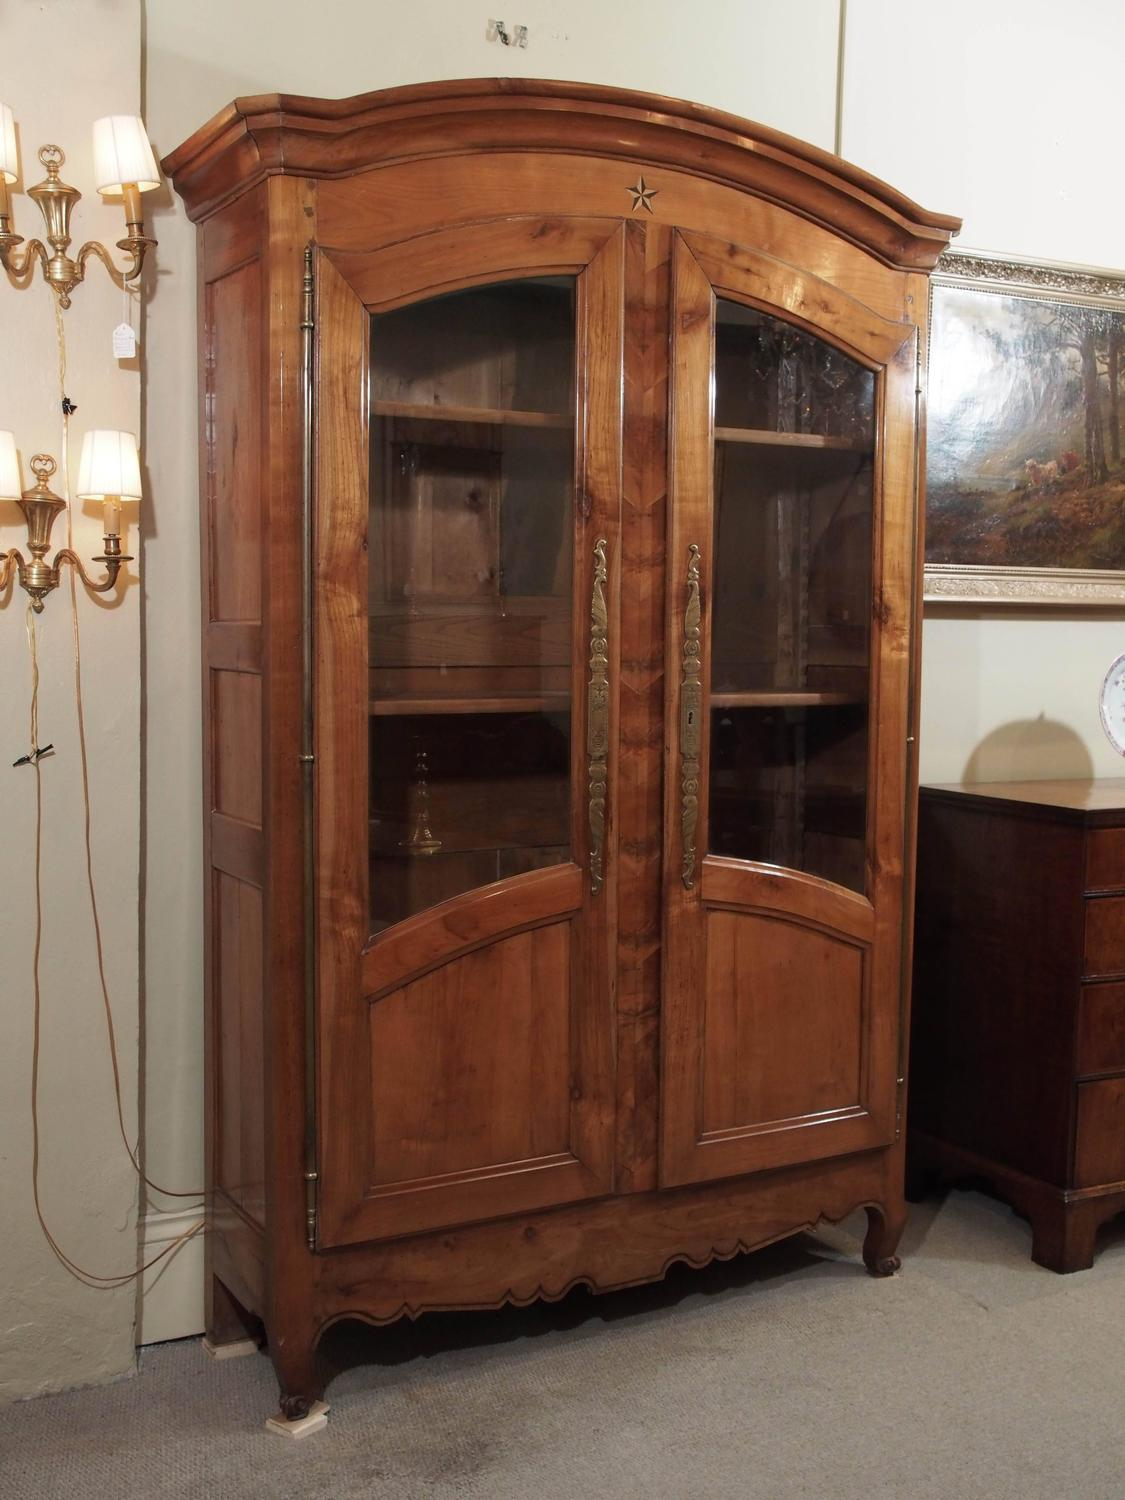 Antique French Fruitwood Inlaid Bookcase Display Cabinet